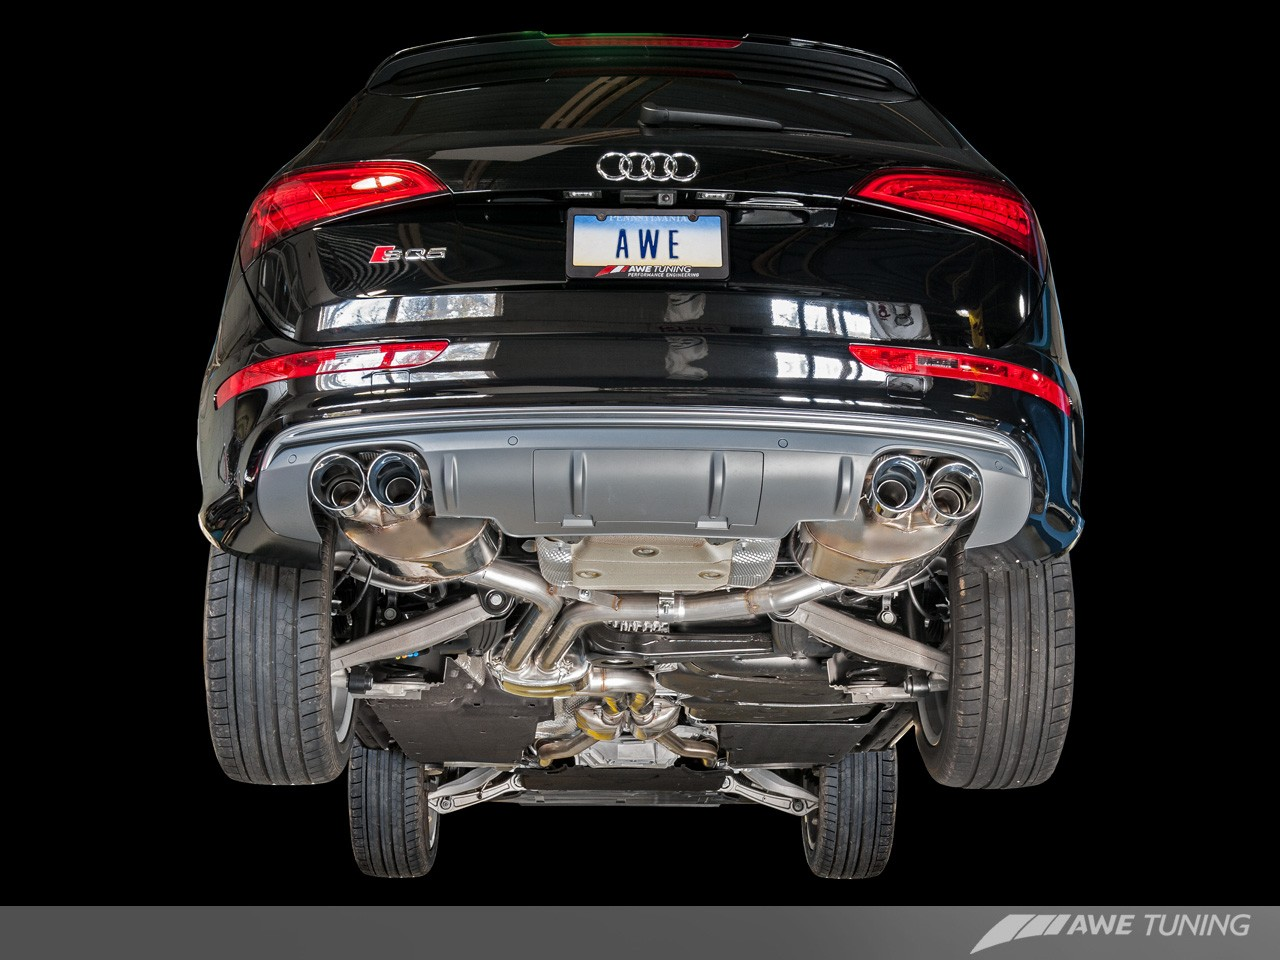 Awe Tuning Audi Sq5 Touring Edition Exhaust